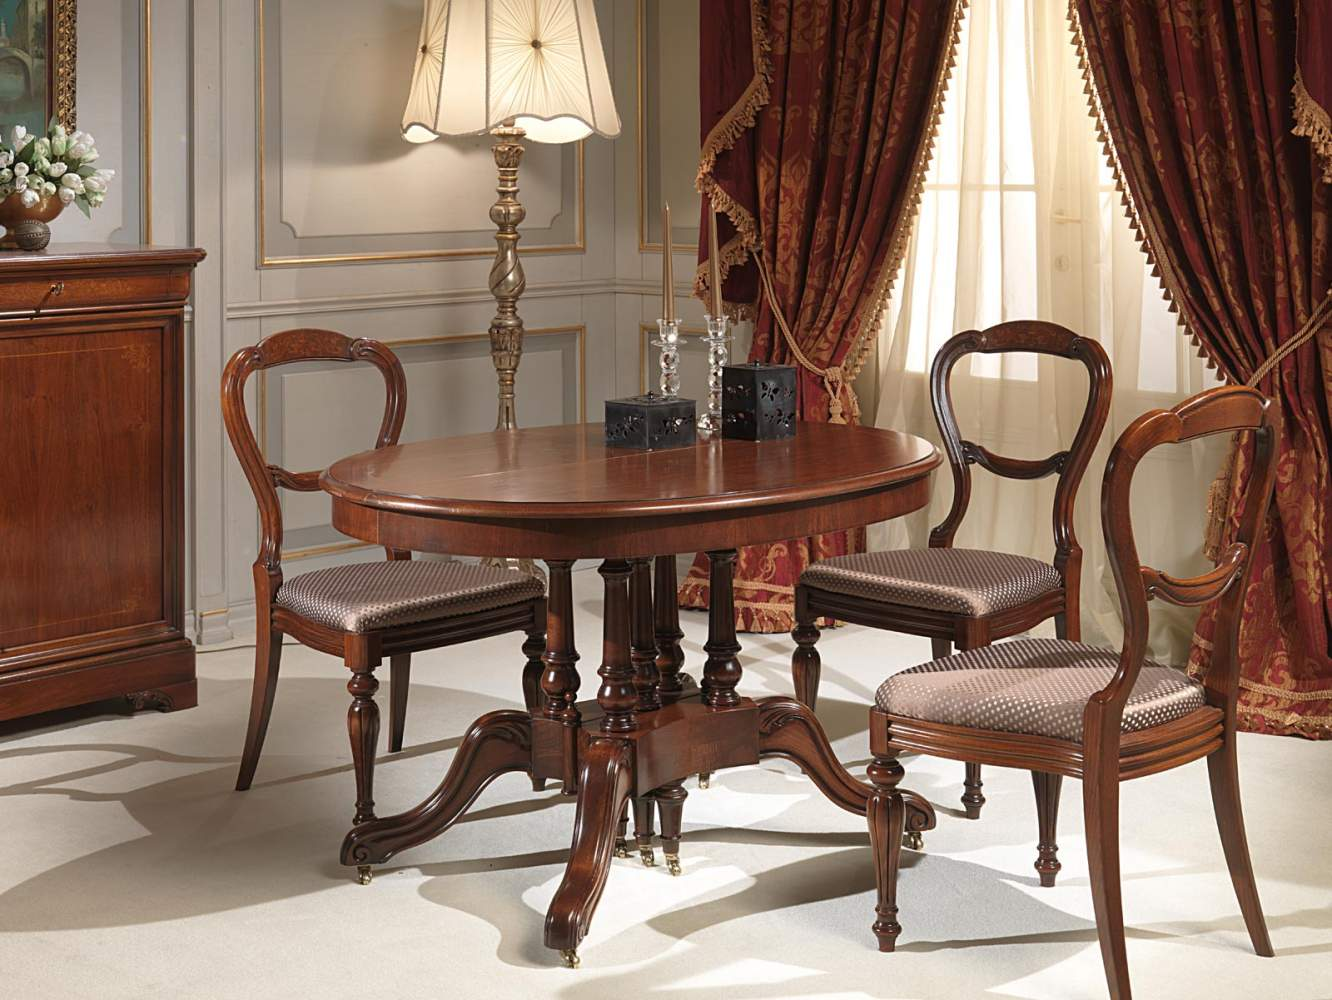 Round extendable table classic style in walnut length up to over two meters and a half